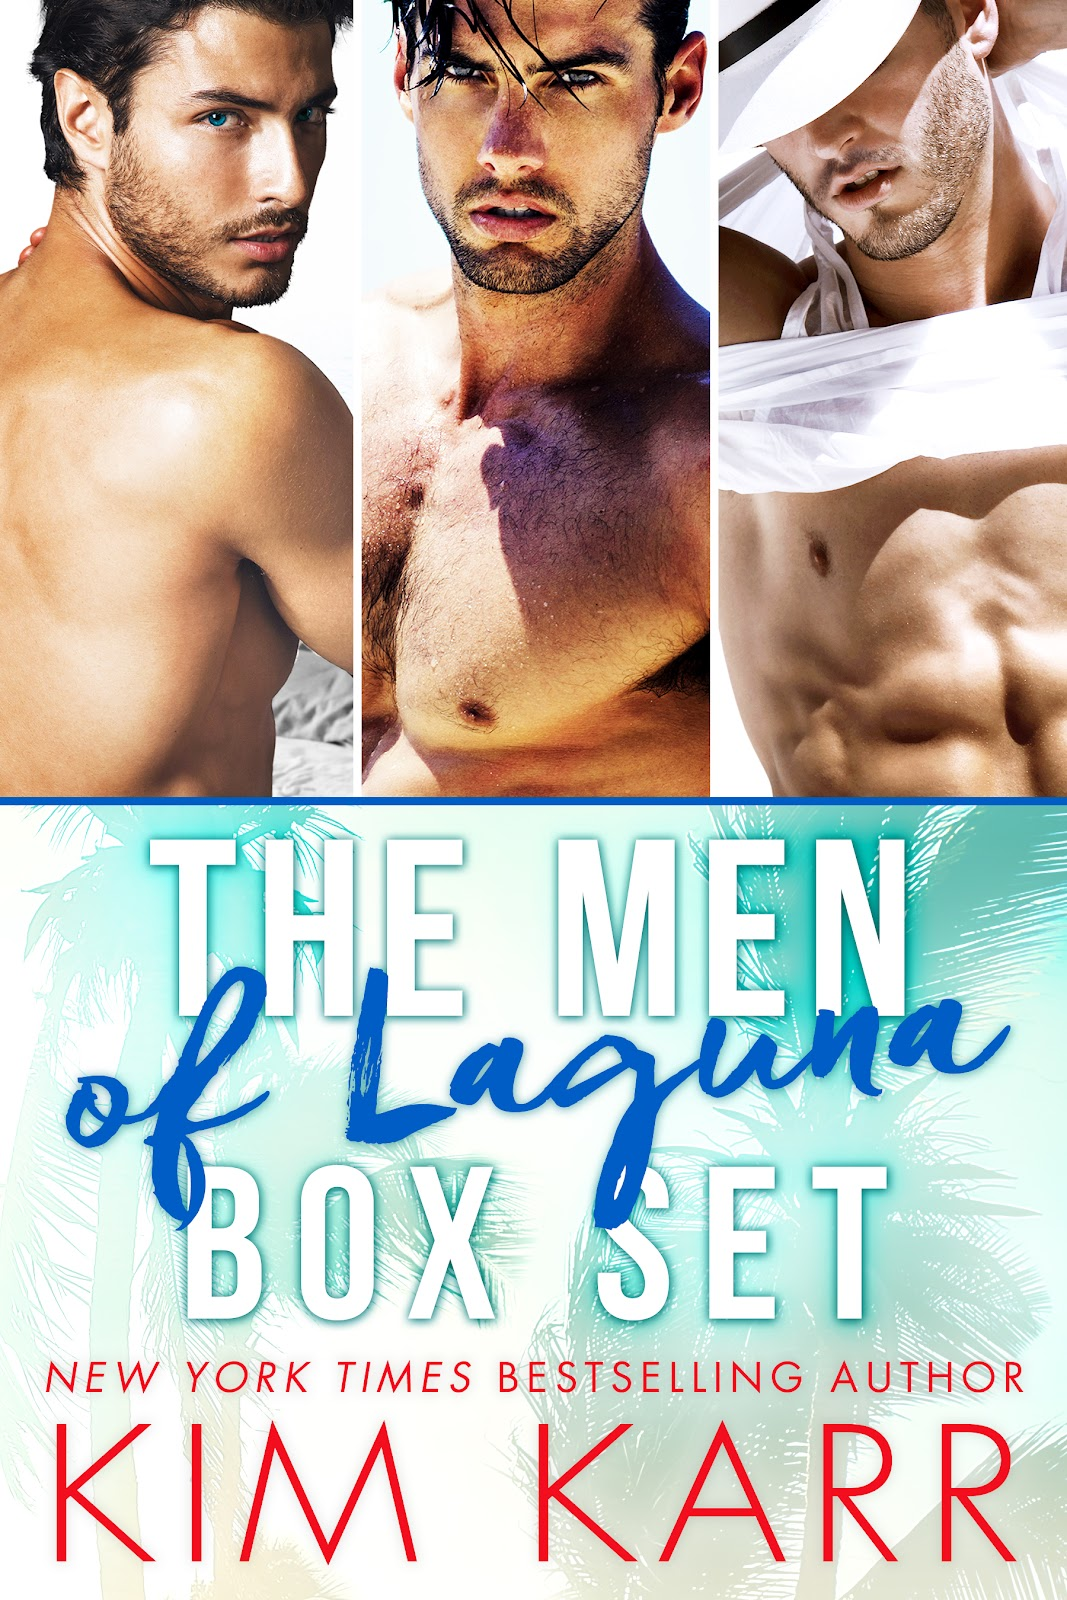 THE MEN OF LAGUNA BOX SET_front cover